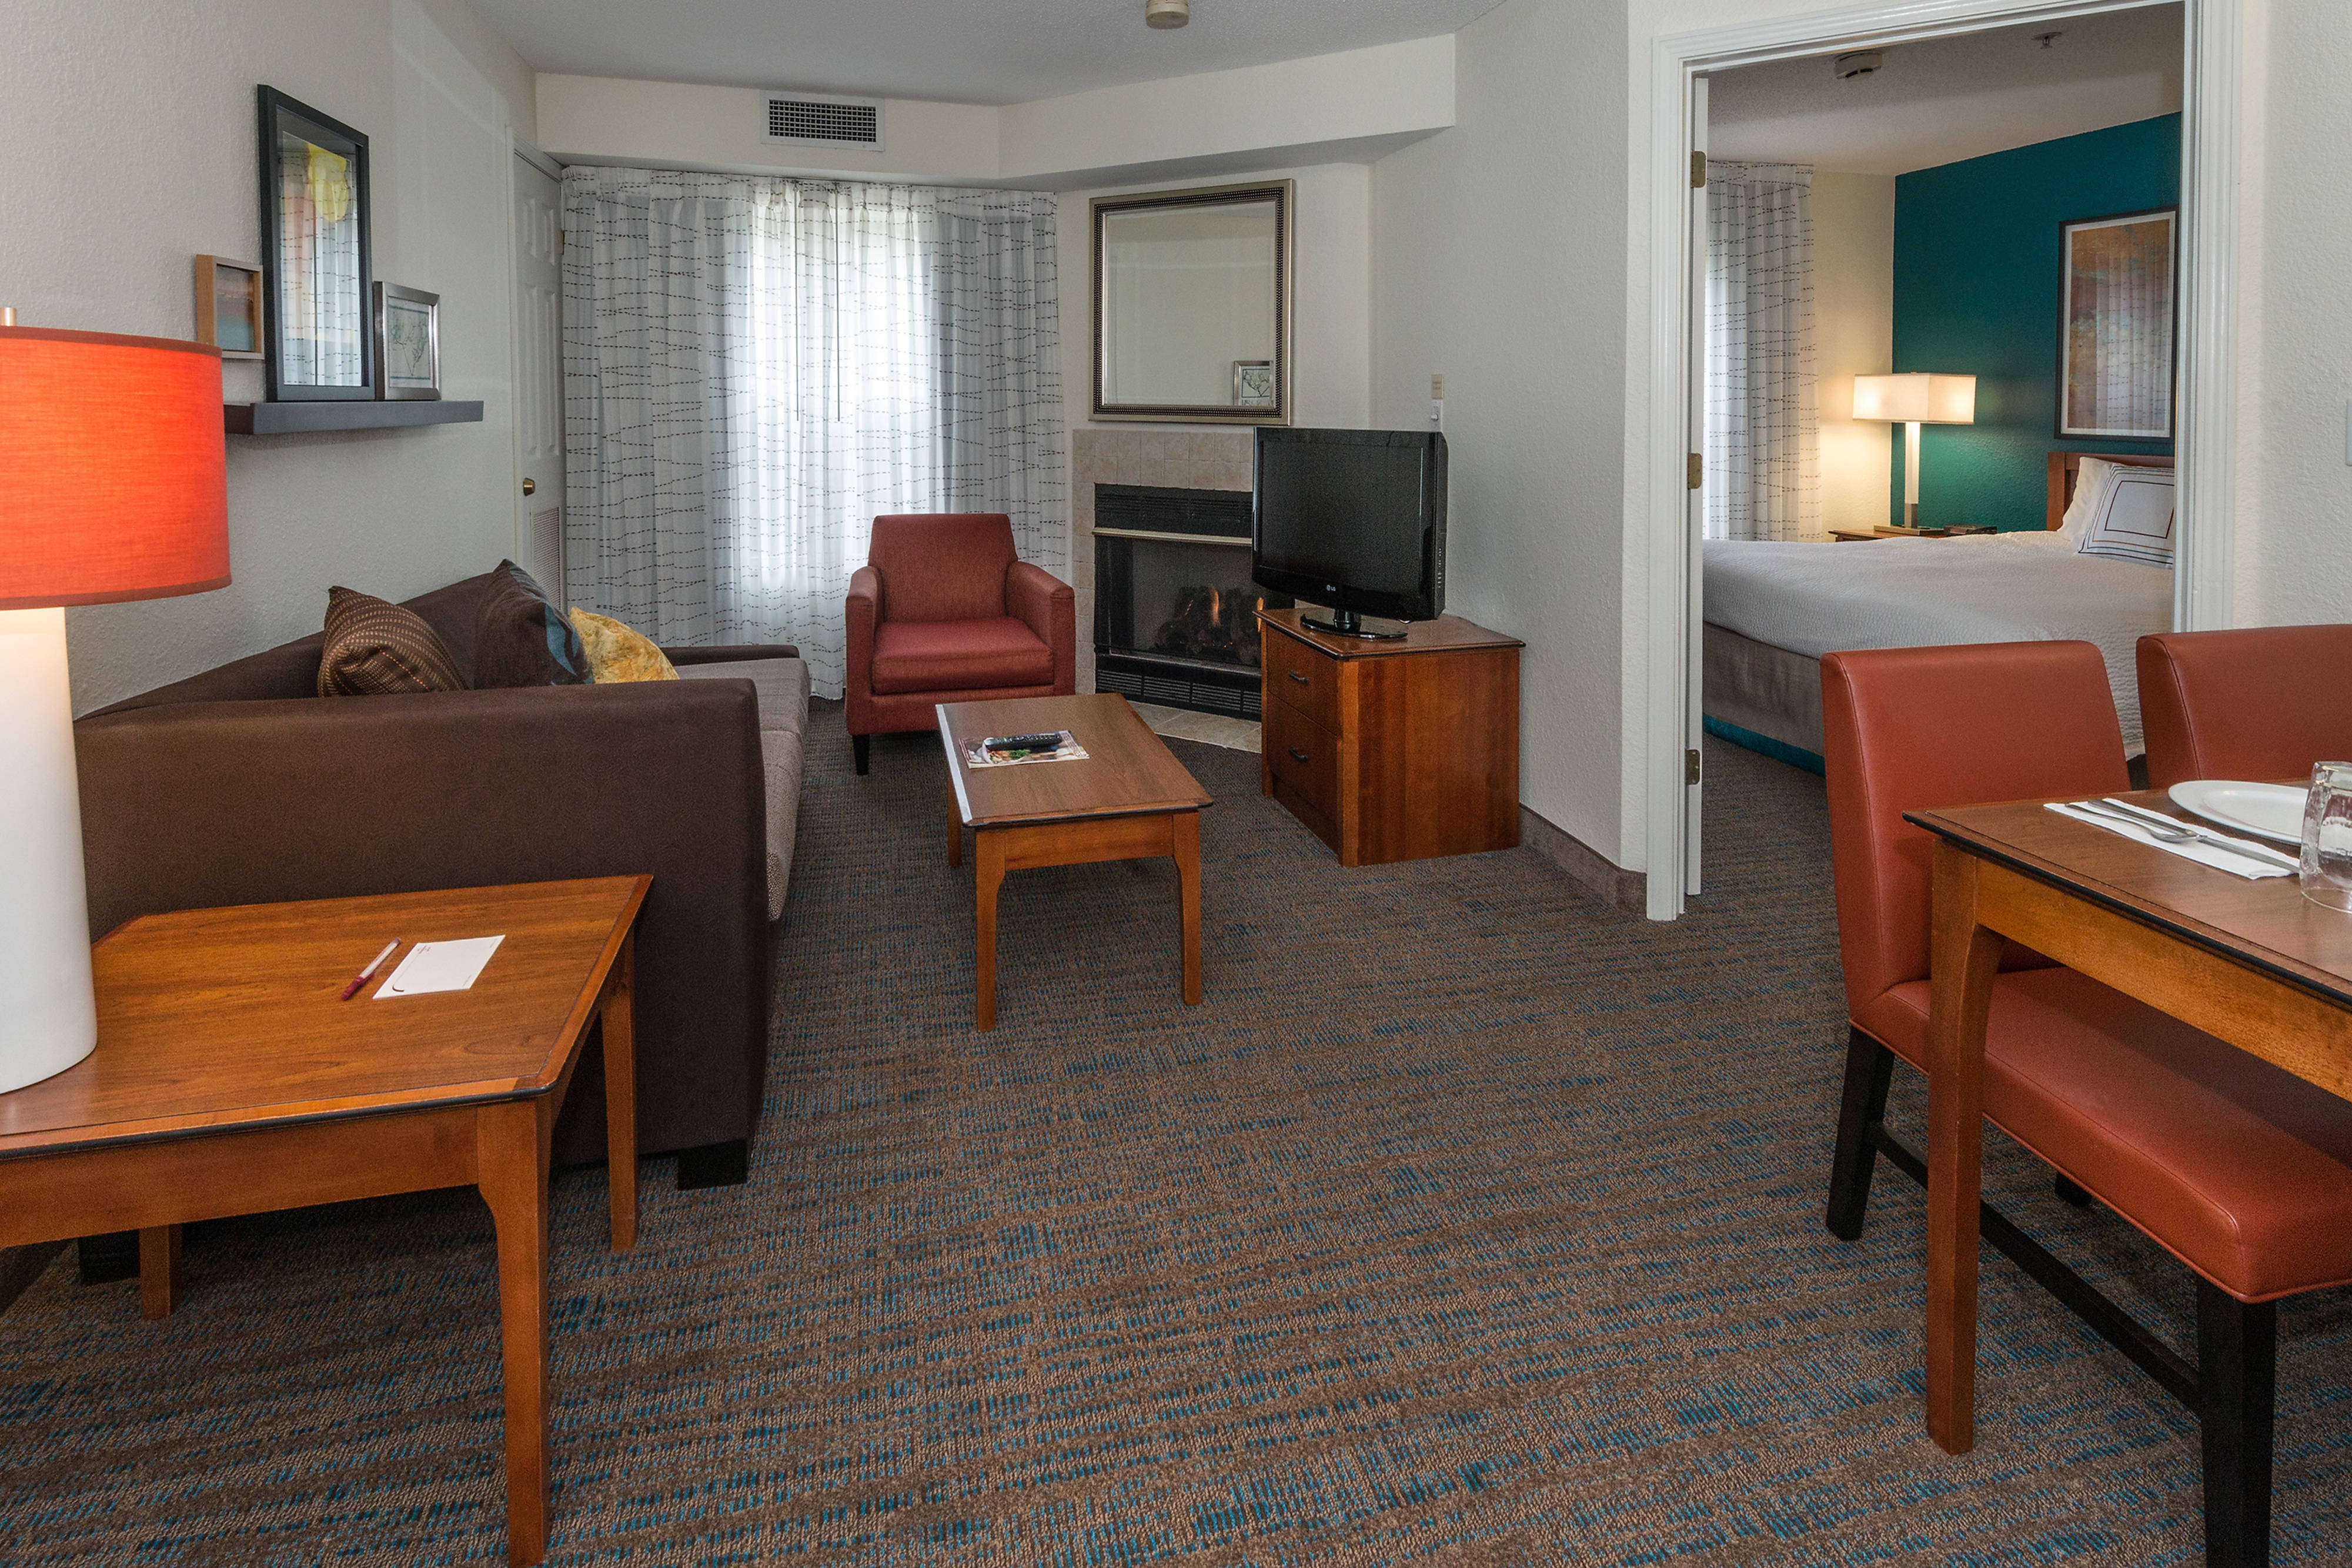 sjcml silicon hor rooms room valley clsc bedroom hotels suites suite in hotel residence milpitas inn amenities orleans new